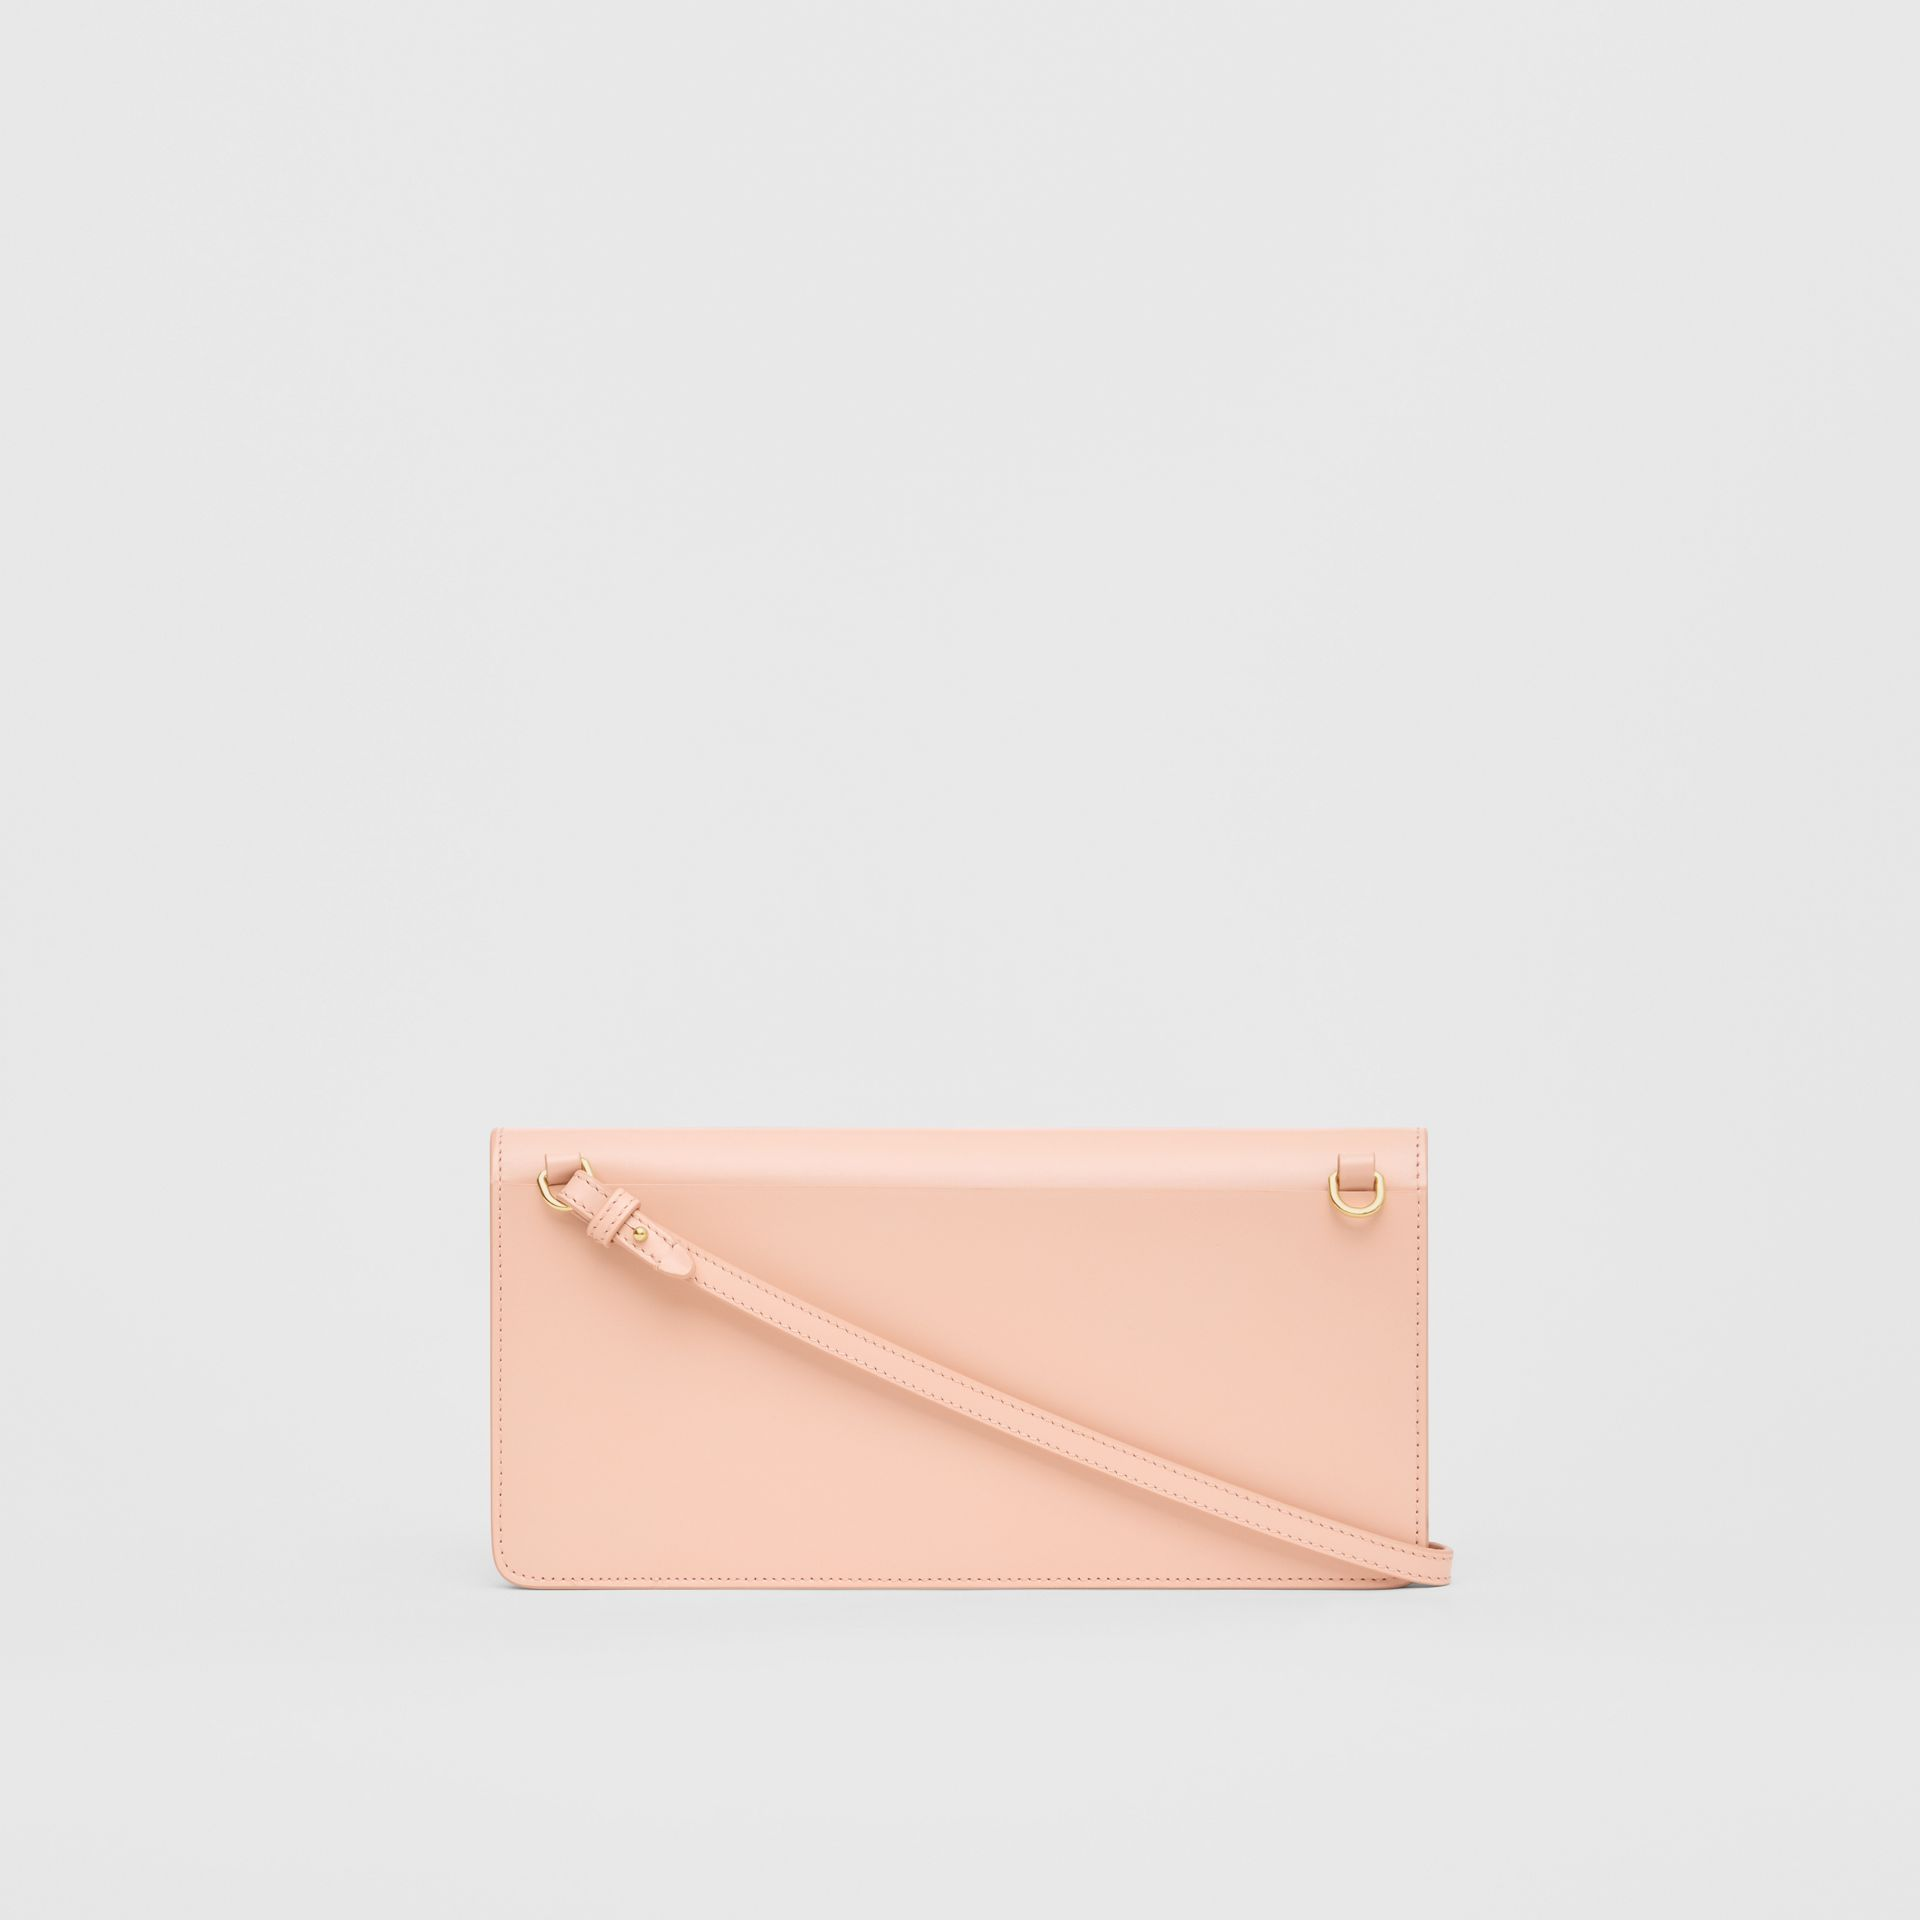 Horseferry Print Leather Bag with Detachable Strap in Blush Pink - Women | Burberry United Kingdom - gallery image 7